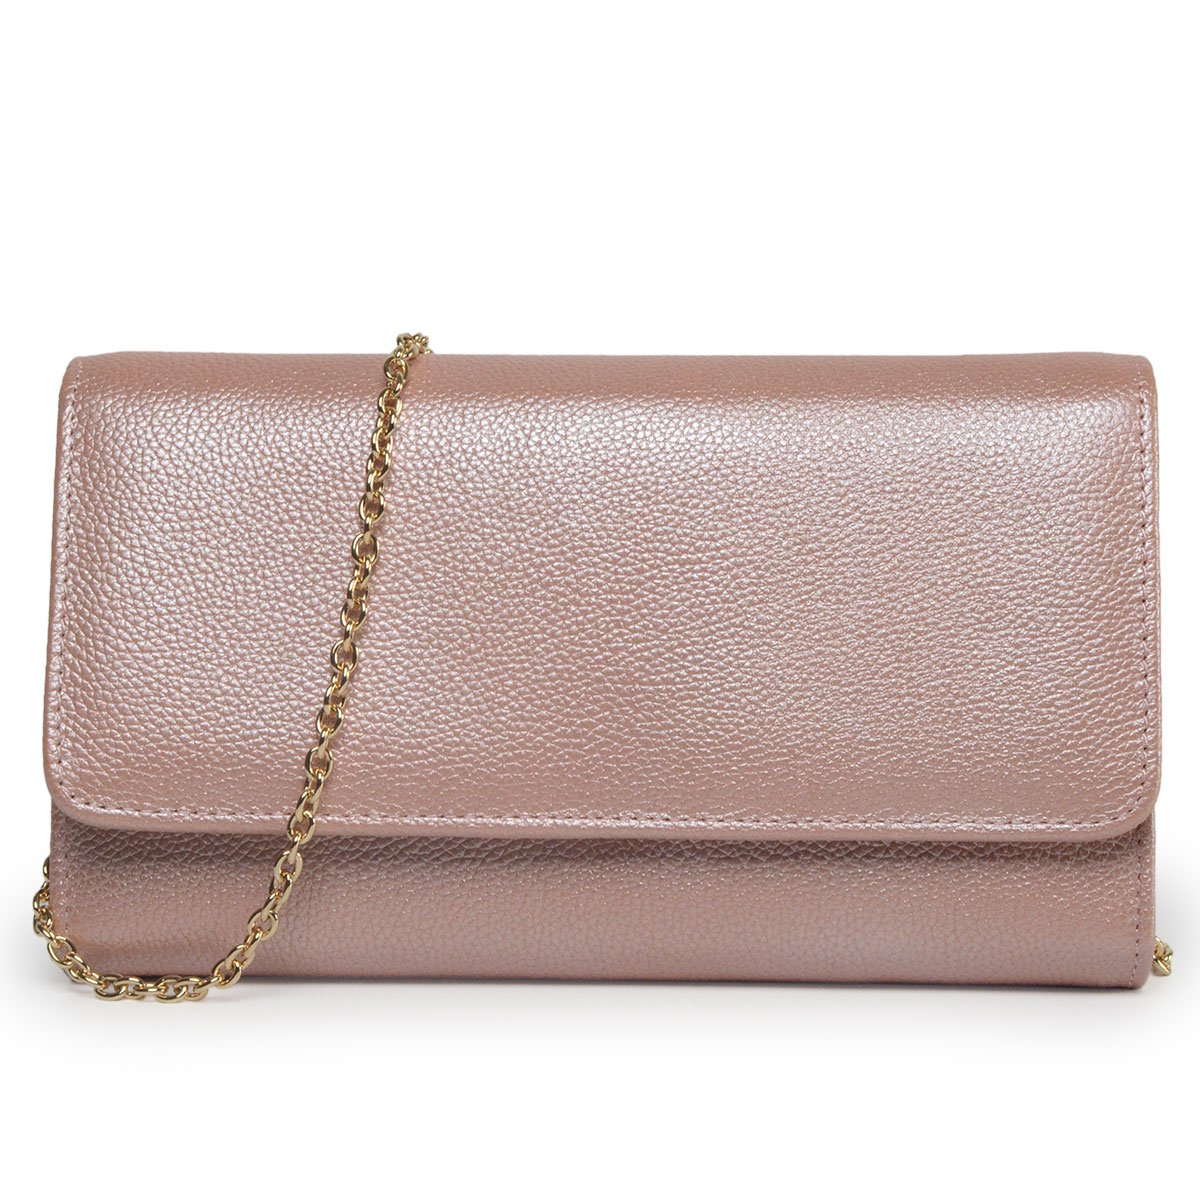 Women RFID Leather Trifold Wallet Cossbody Purse Clutch with Chain Strap (Rose Gold) by Bveyzi (Image #2)